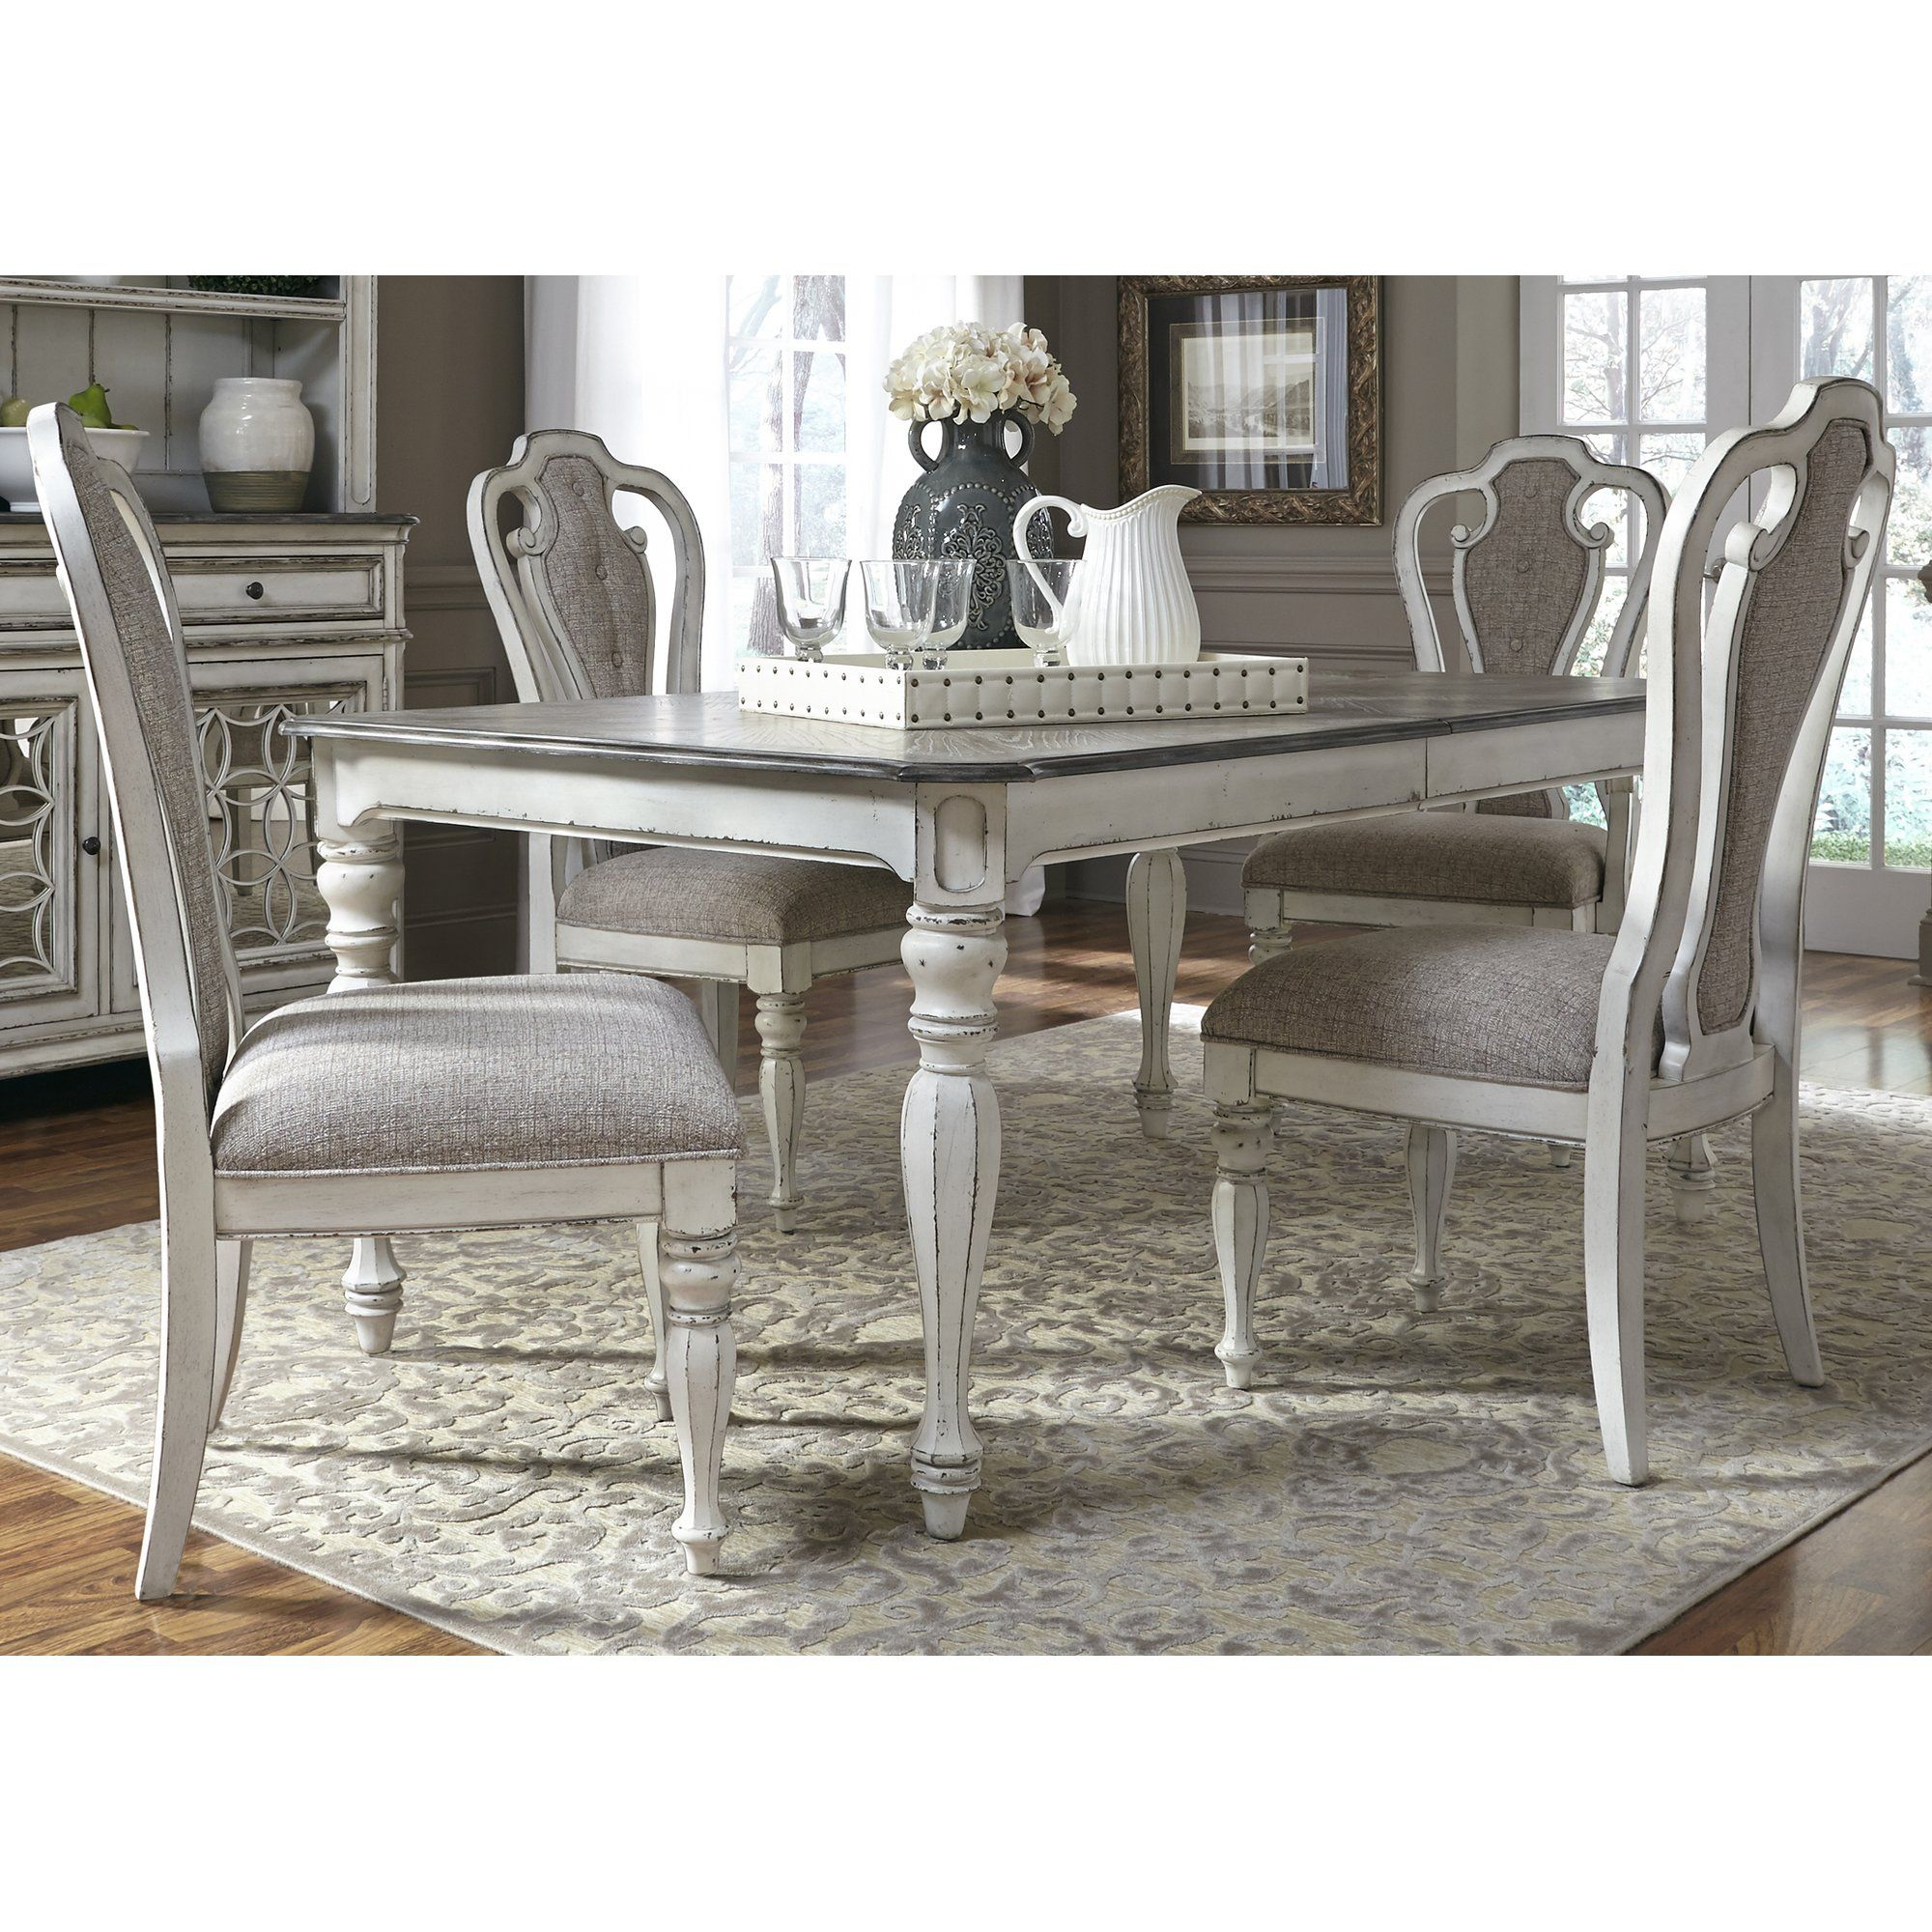 Tiphaine Side Chair Dining Room Spaces Dining Room Sets